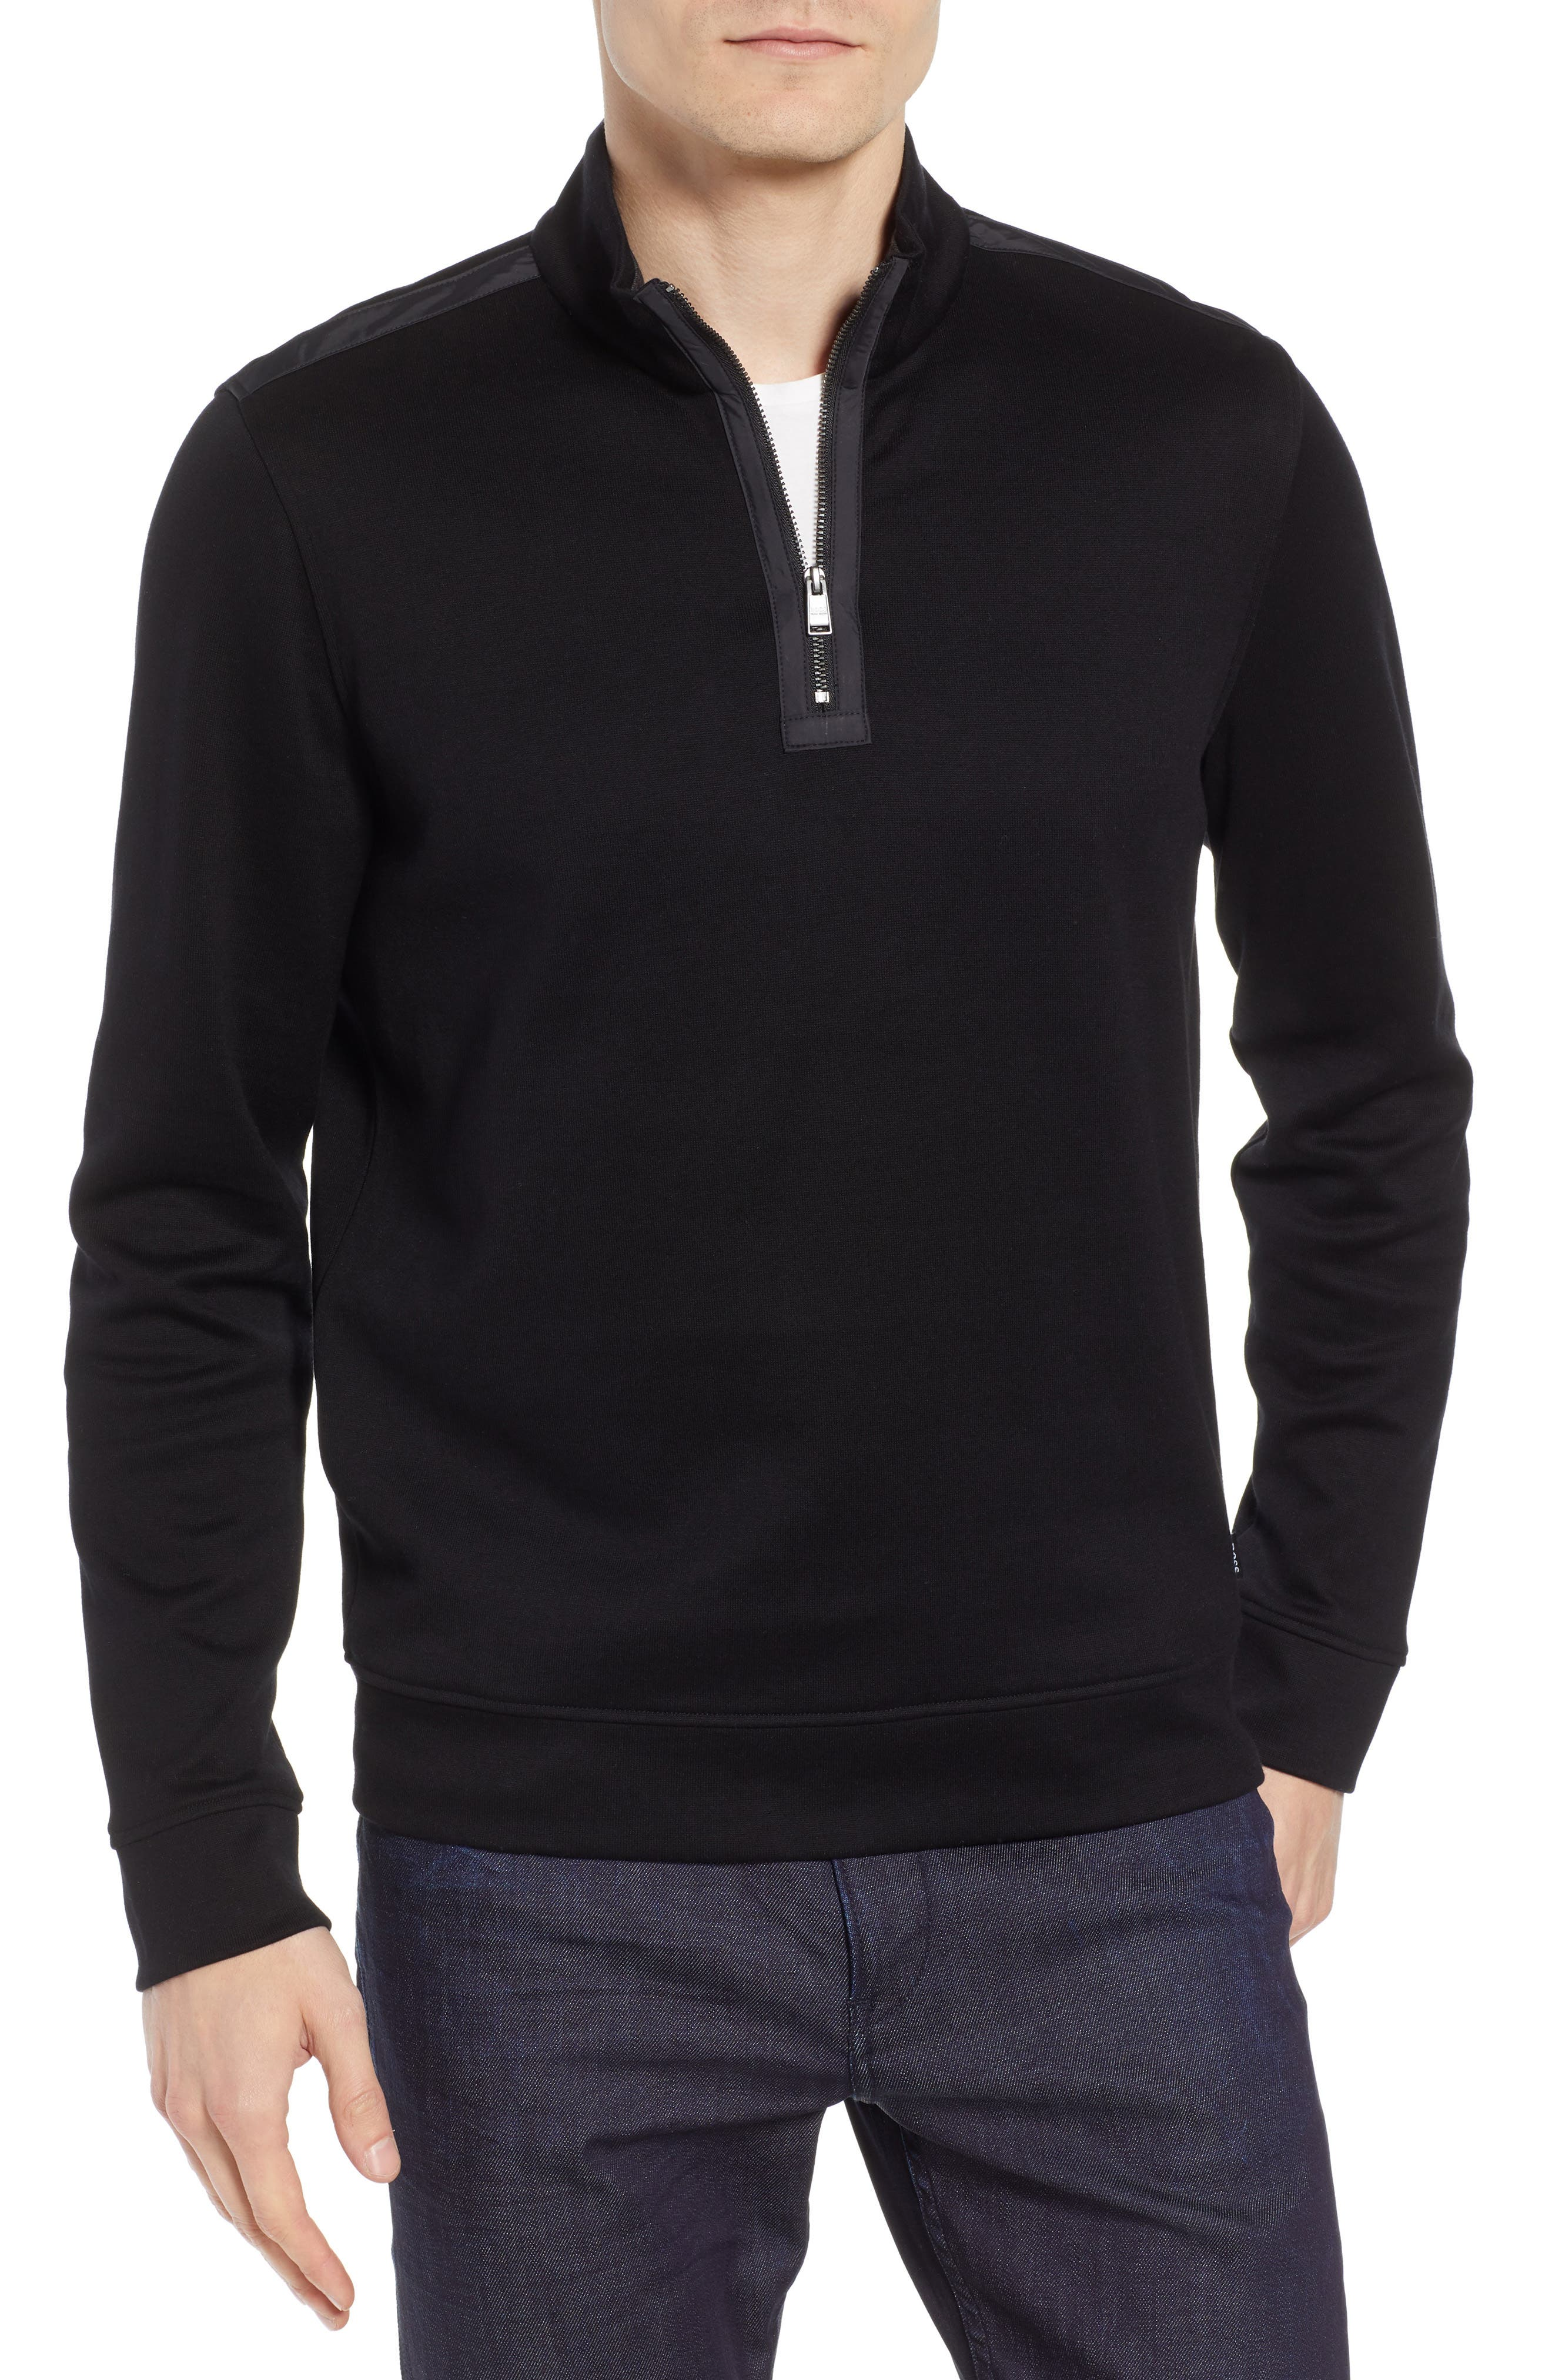 Sidney Regular Fit Quarter Zip Pullover,                             Main thumbnail 1, color,                             BLACK